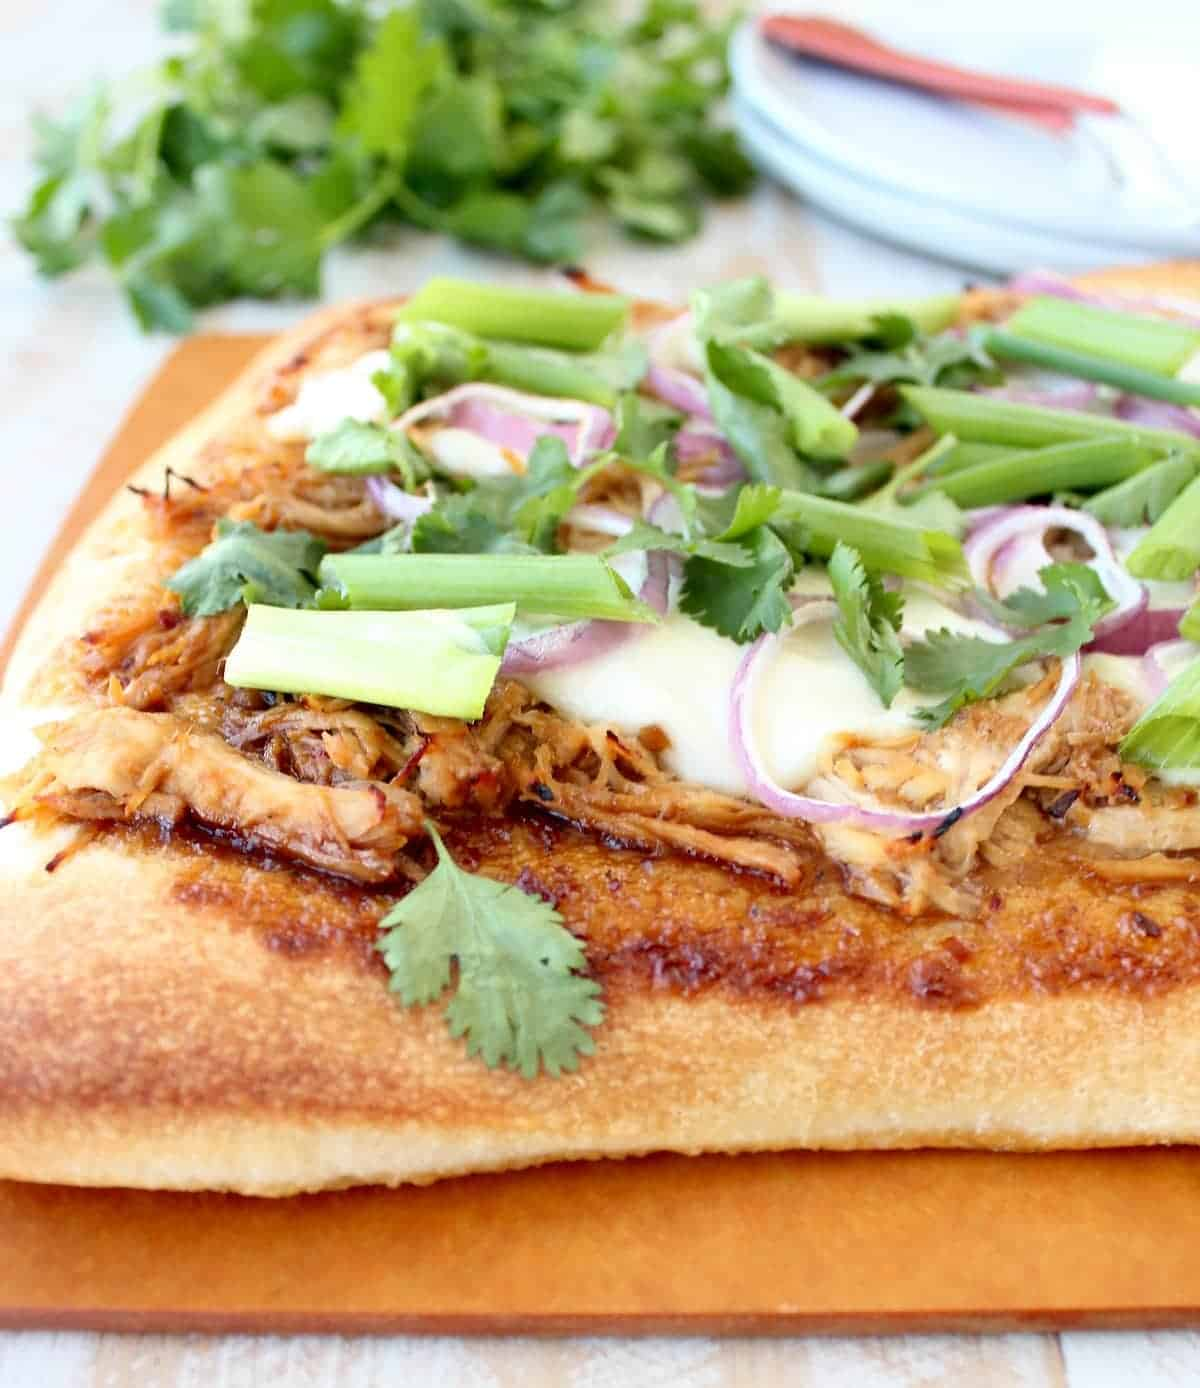 Korean bbq chicken pizza recipe whitneybond forumfinder Image collections